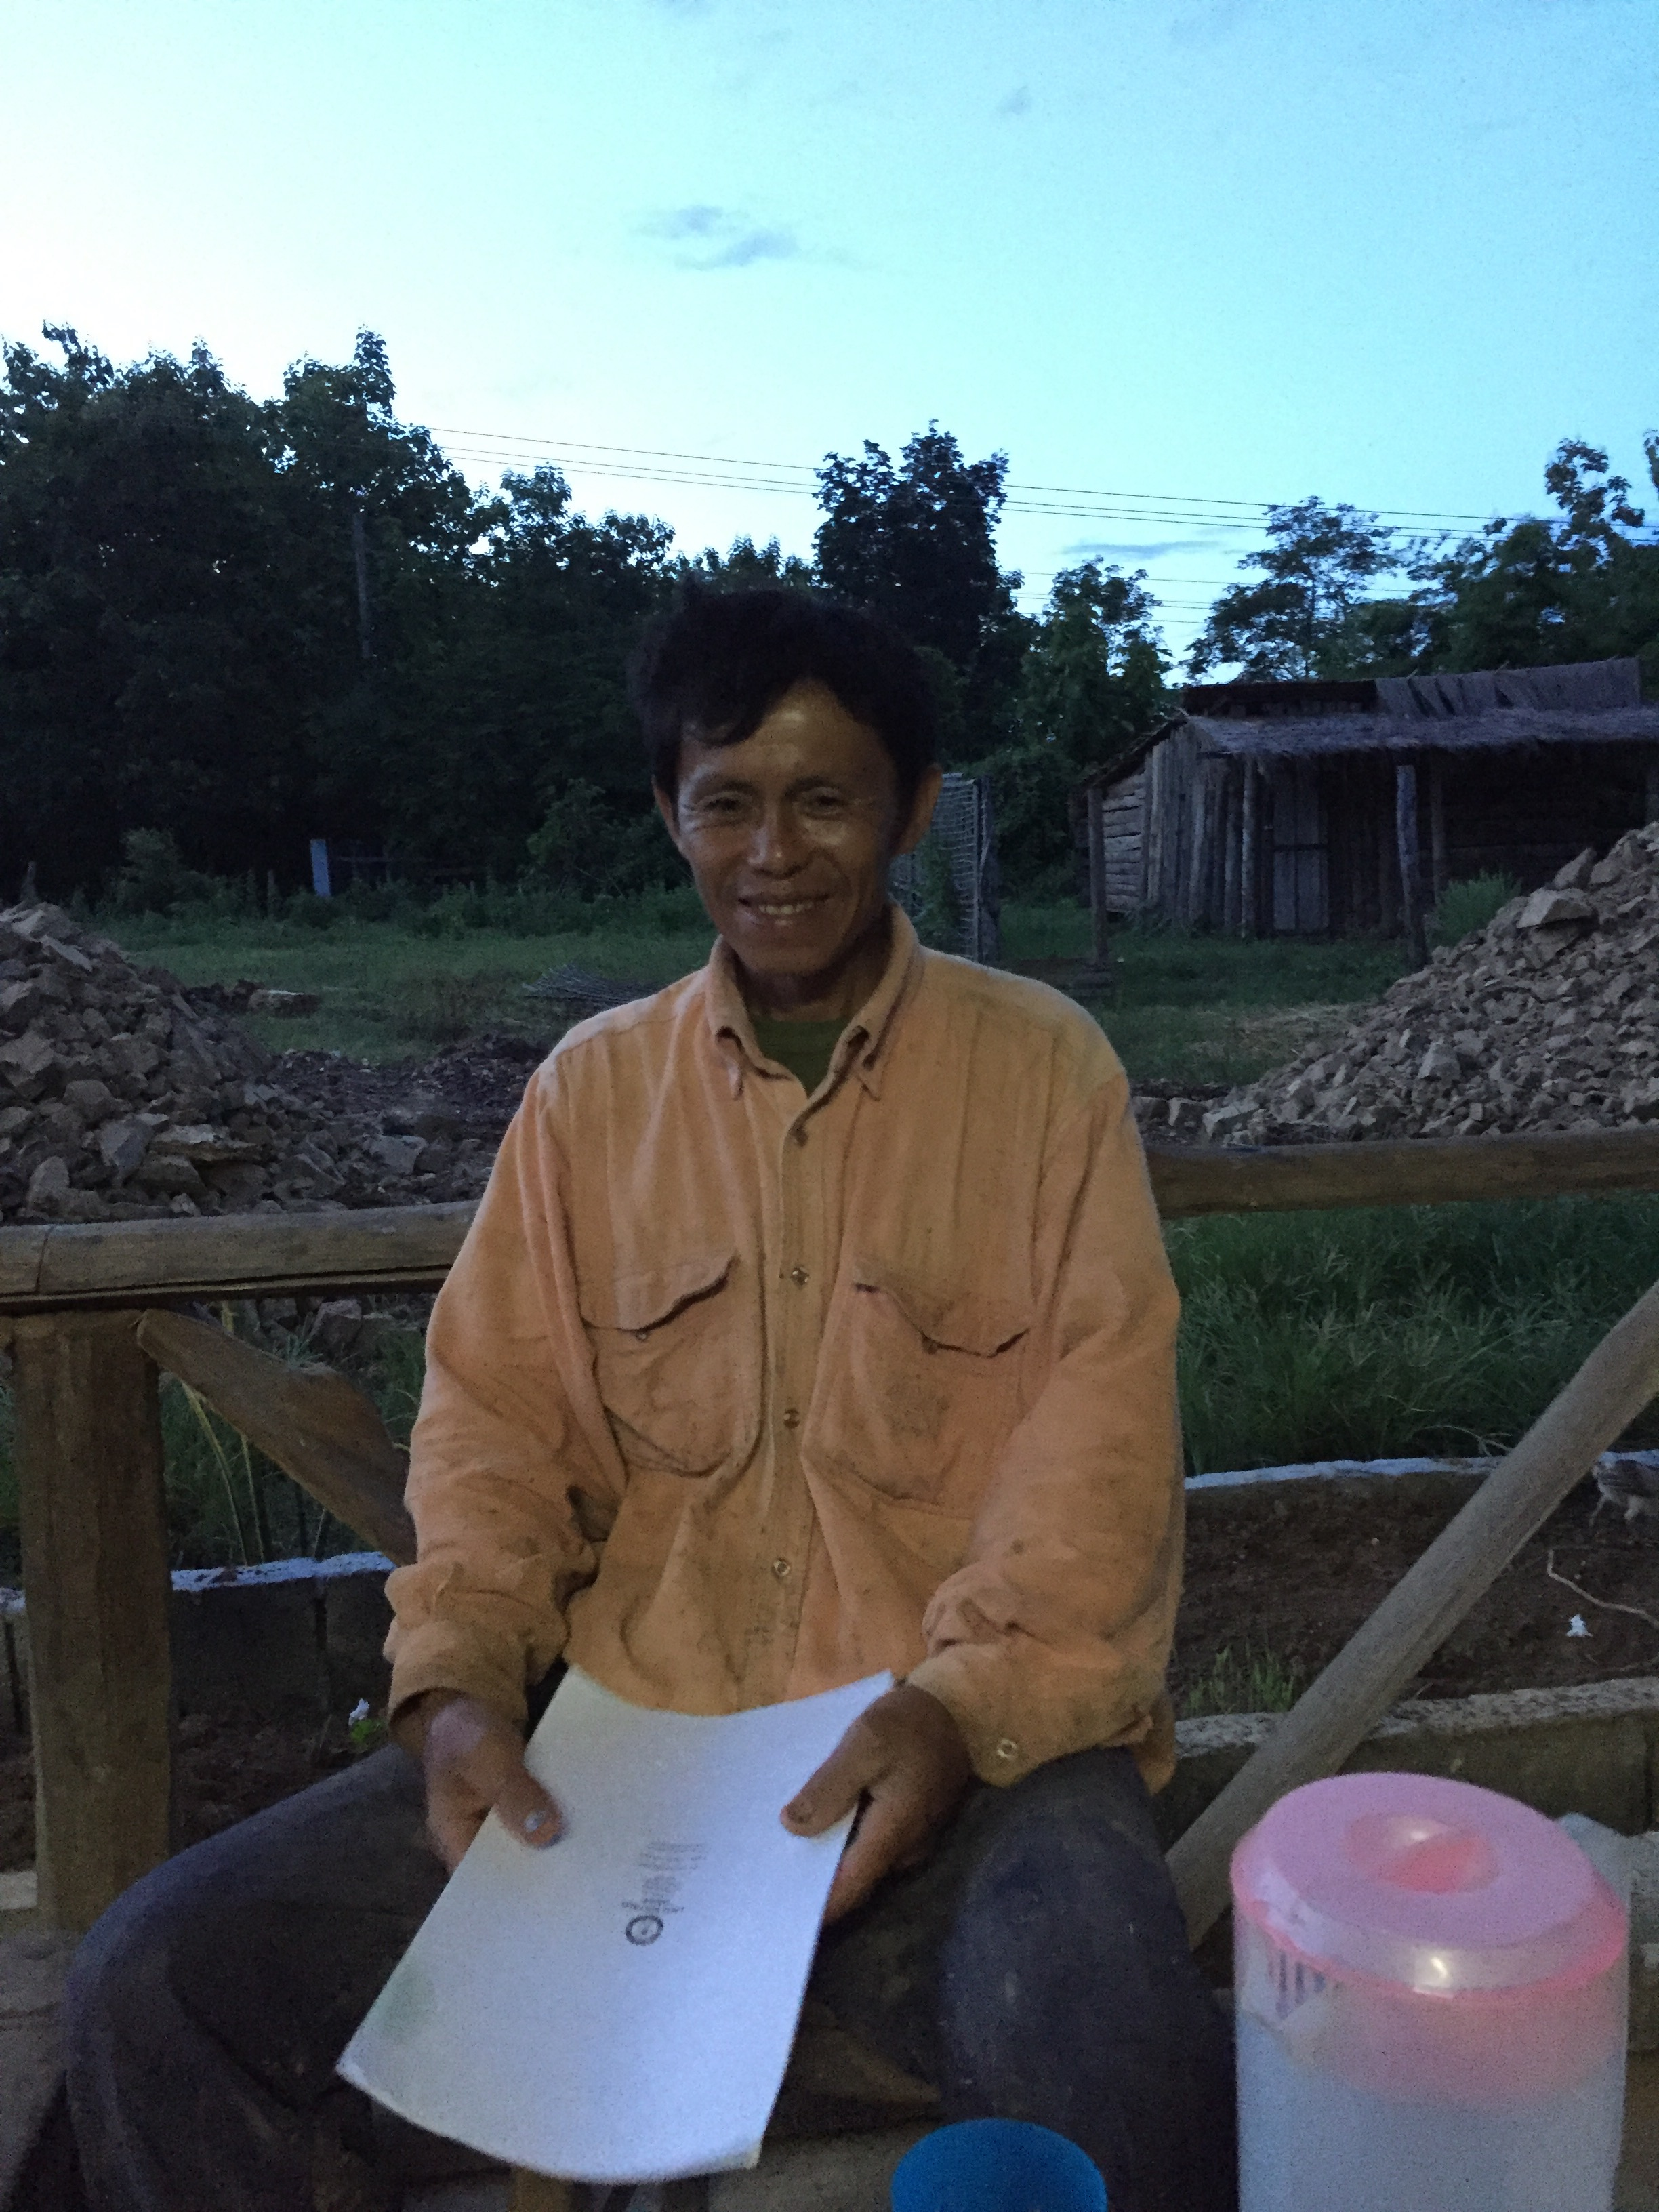 Chief of Thin Keo Village with his buffalo rental agreement